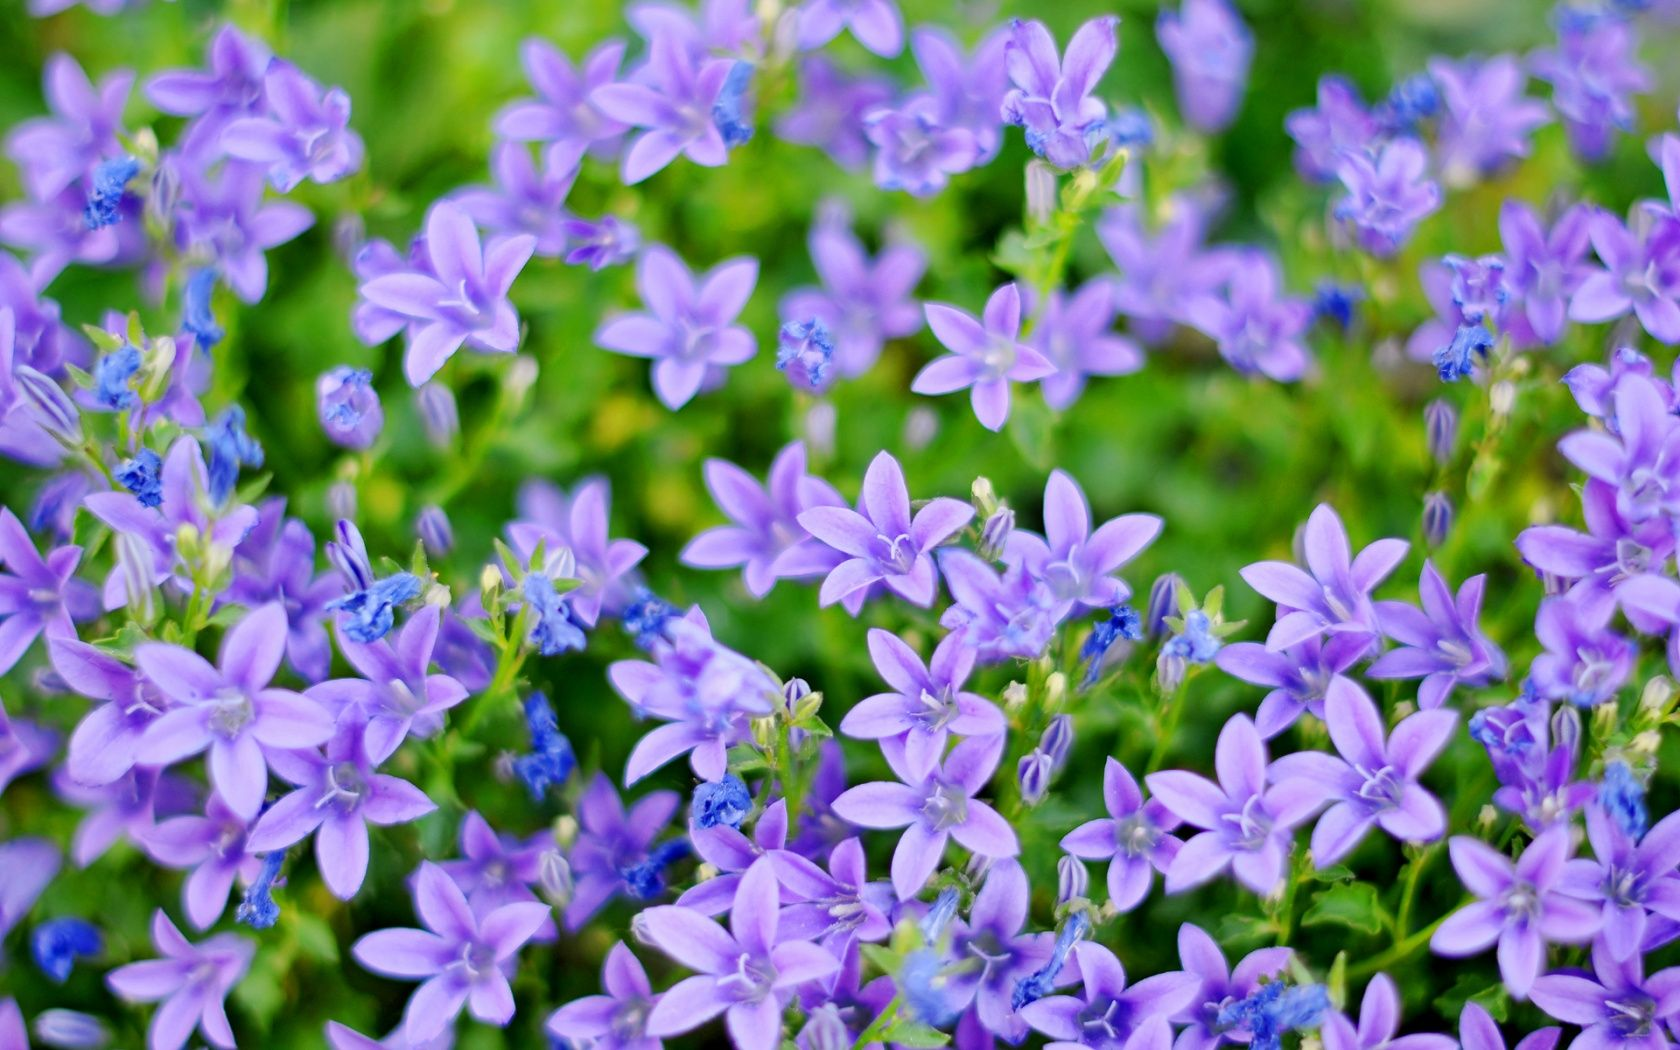 Small Pictures Of Flowers Small blue and purple flowers